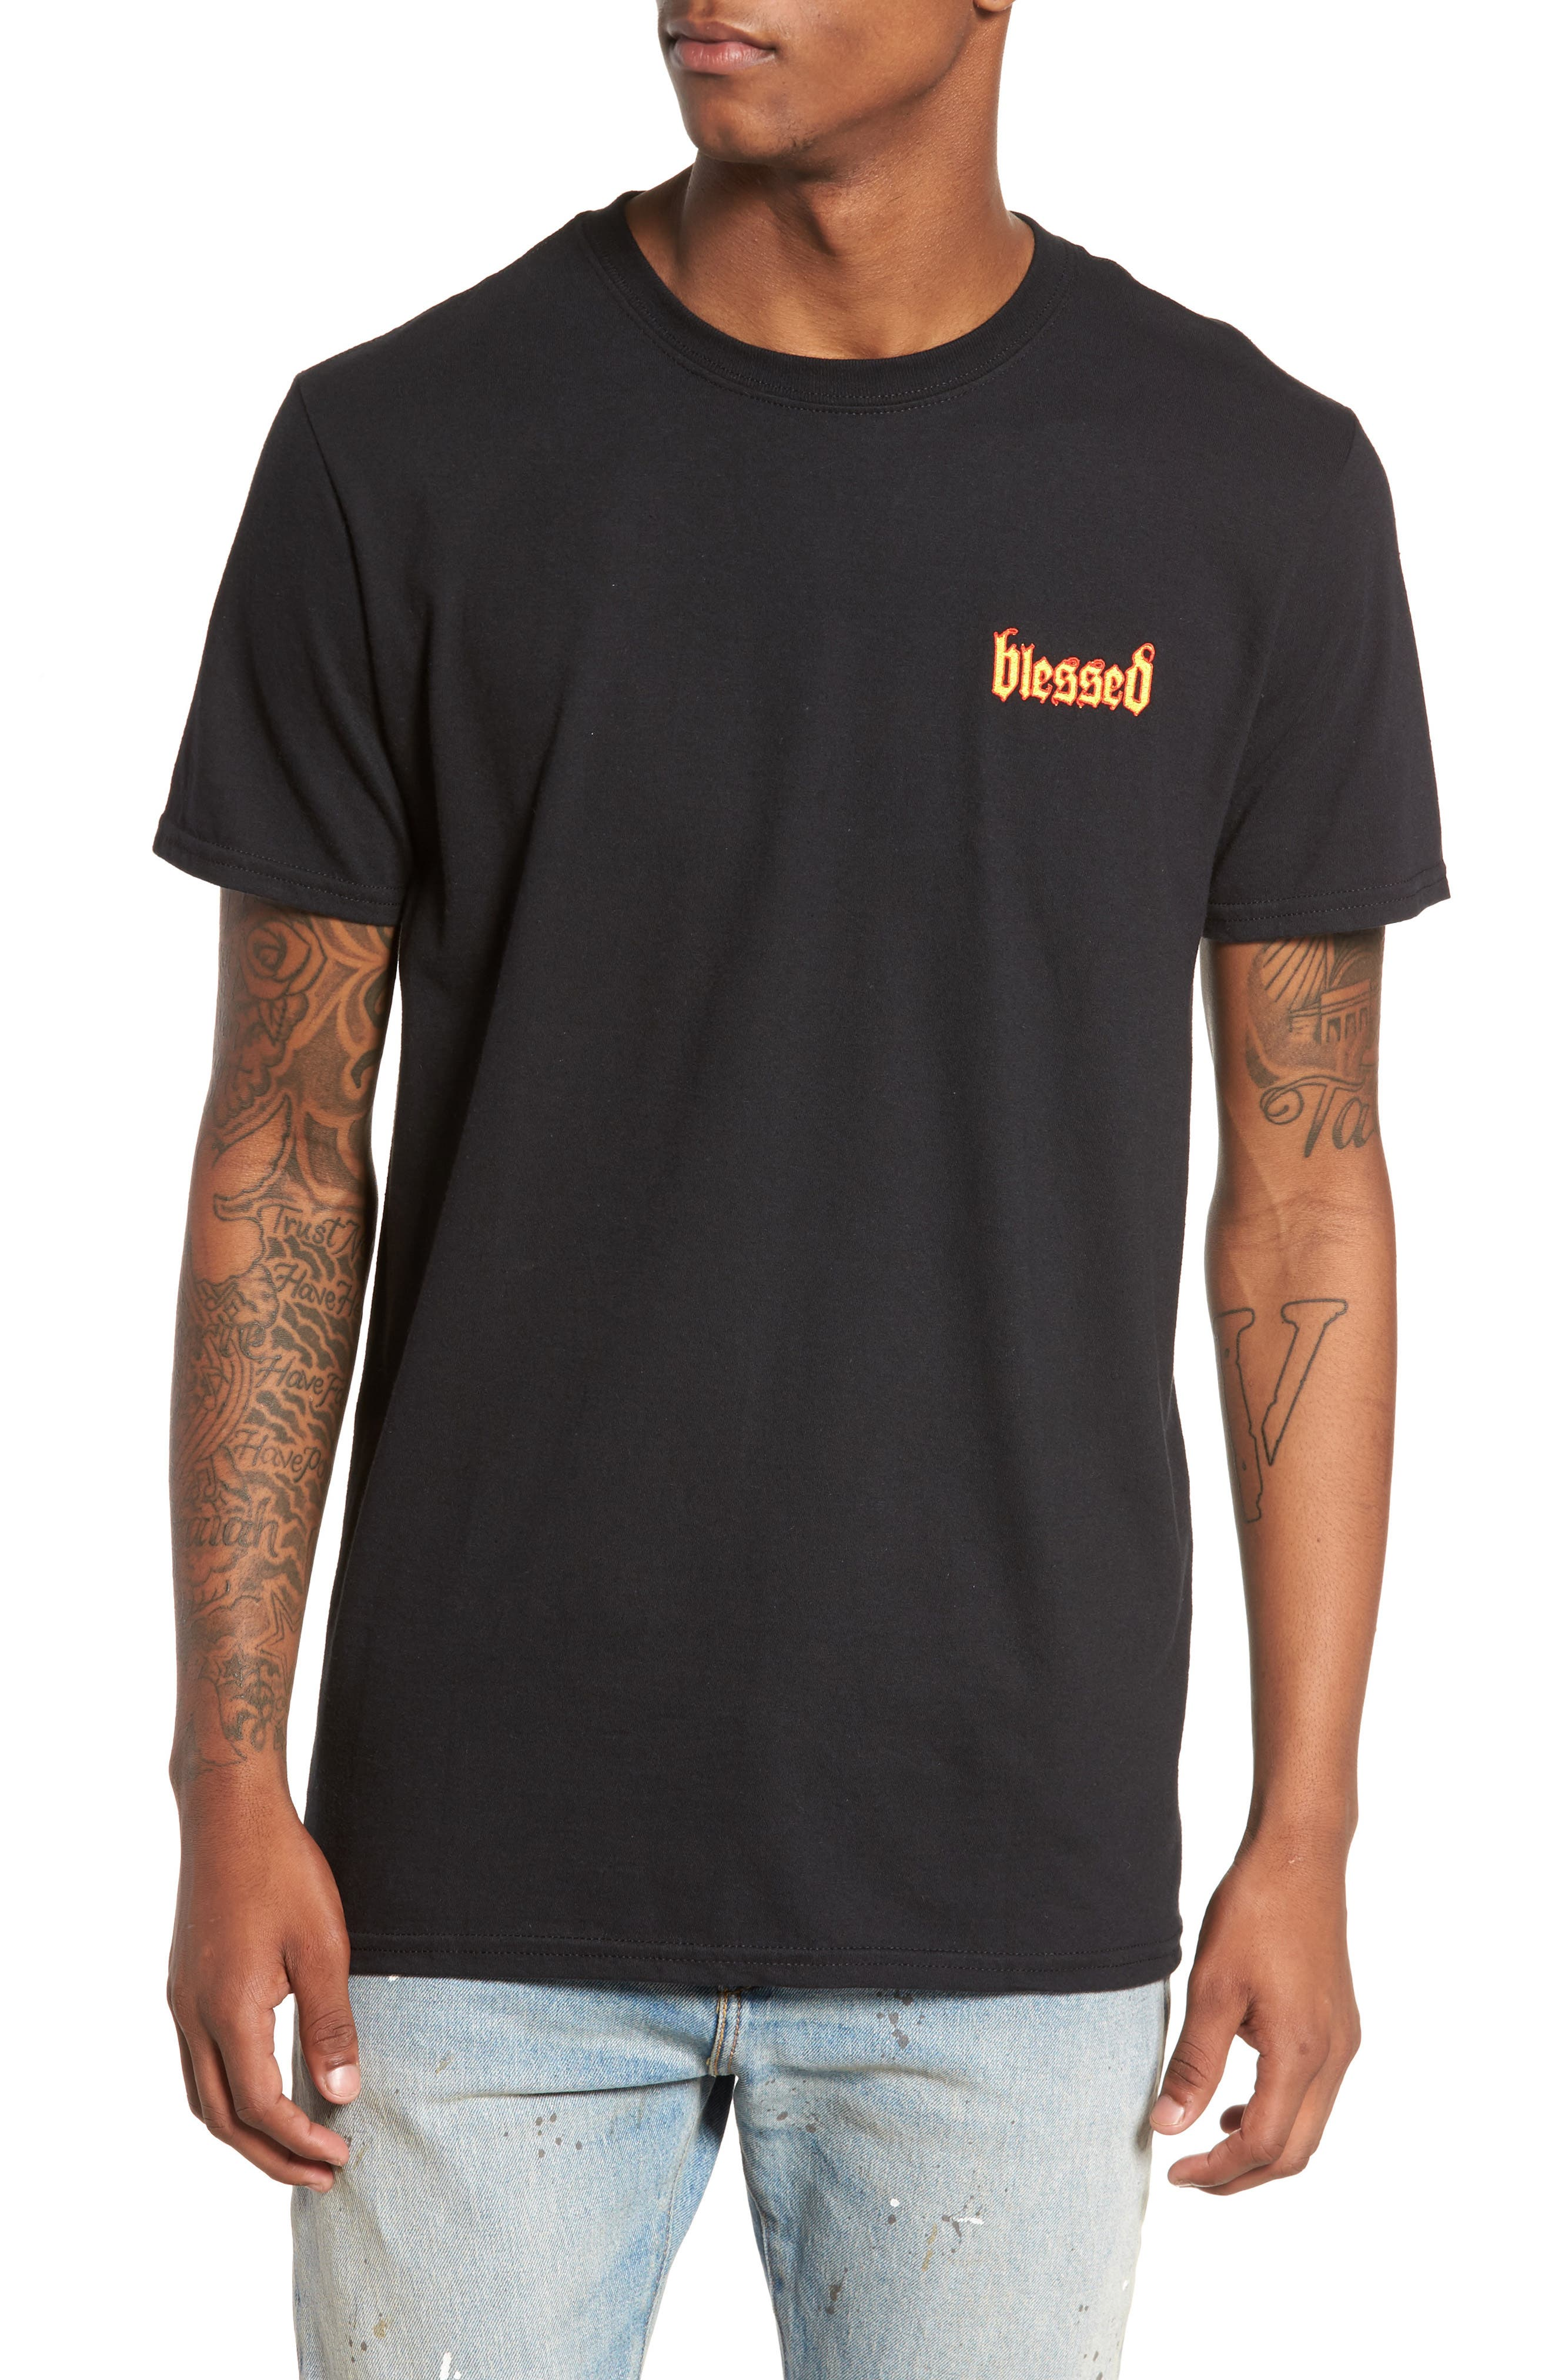 Blessed T-Shirt,                             Main thumbnail 1, color,                             Black Blessed